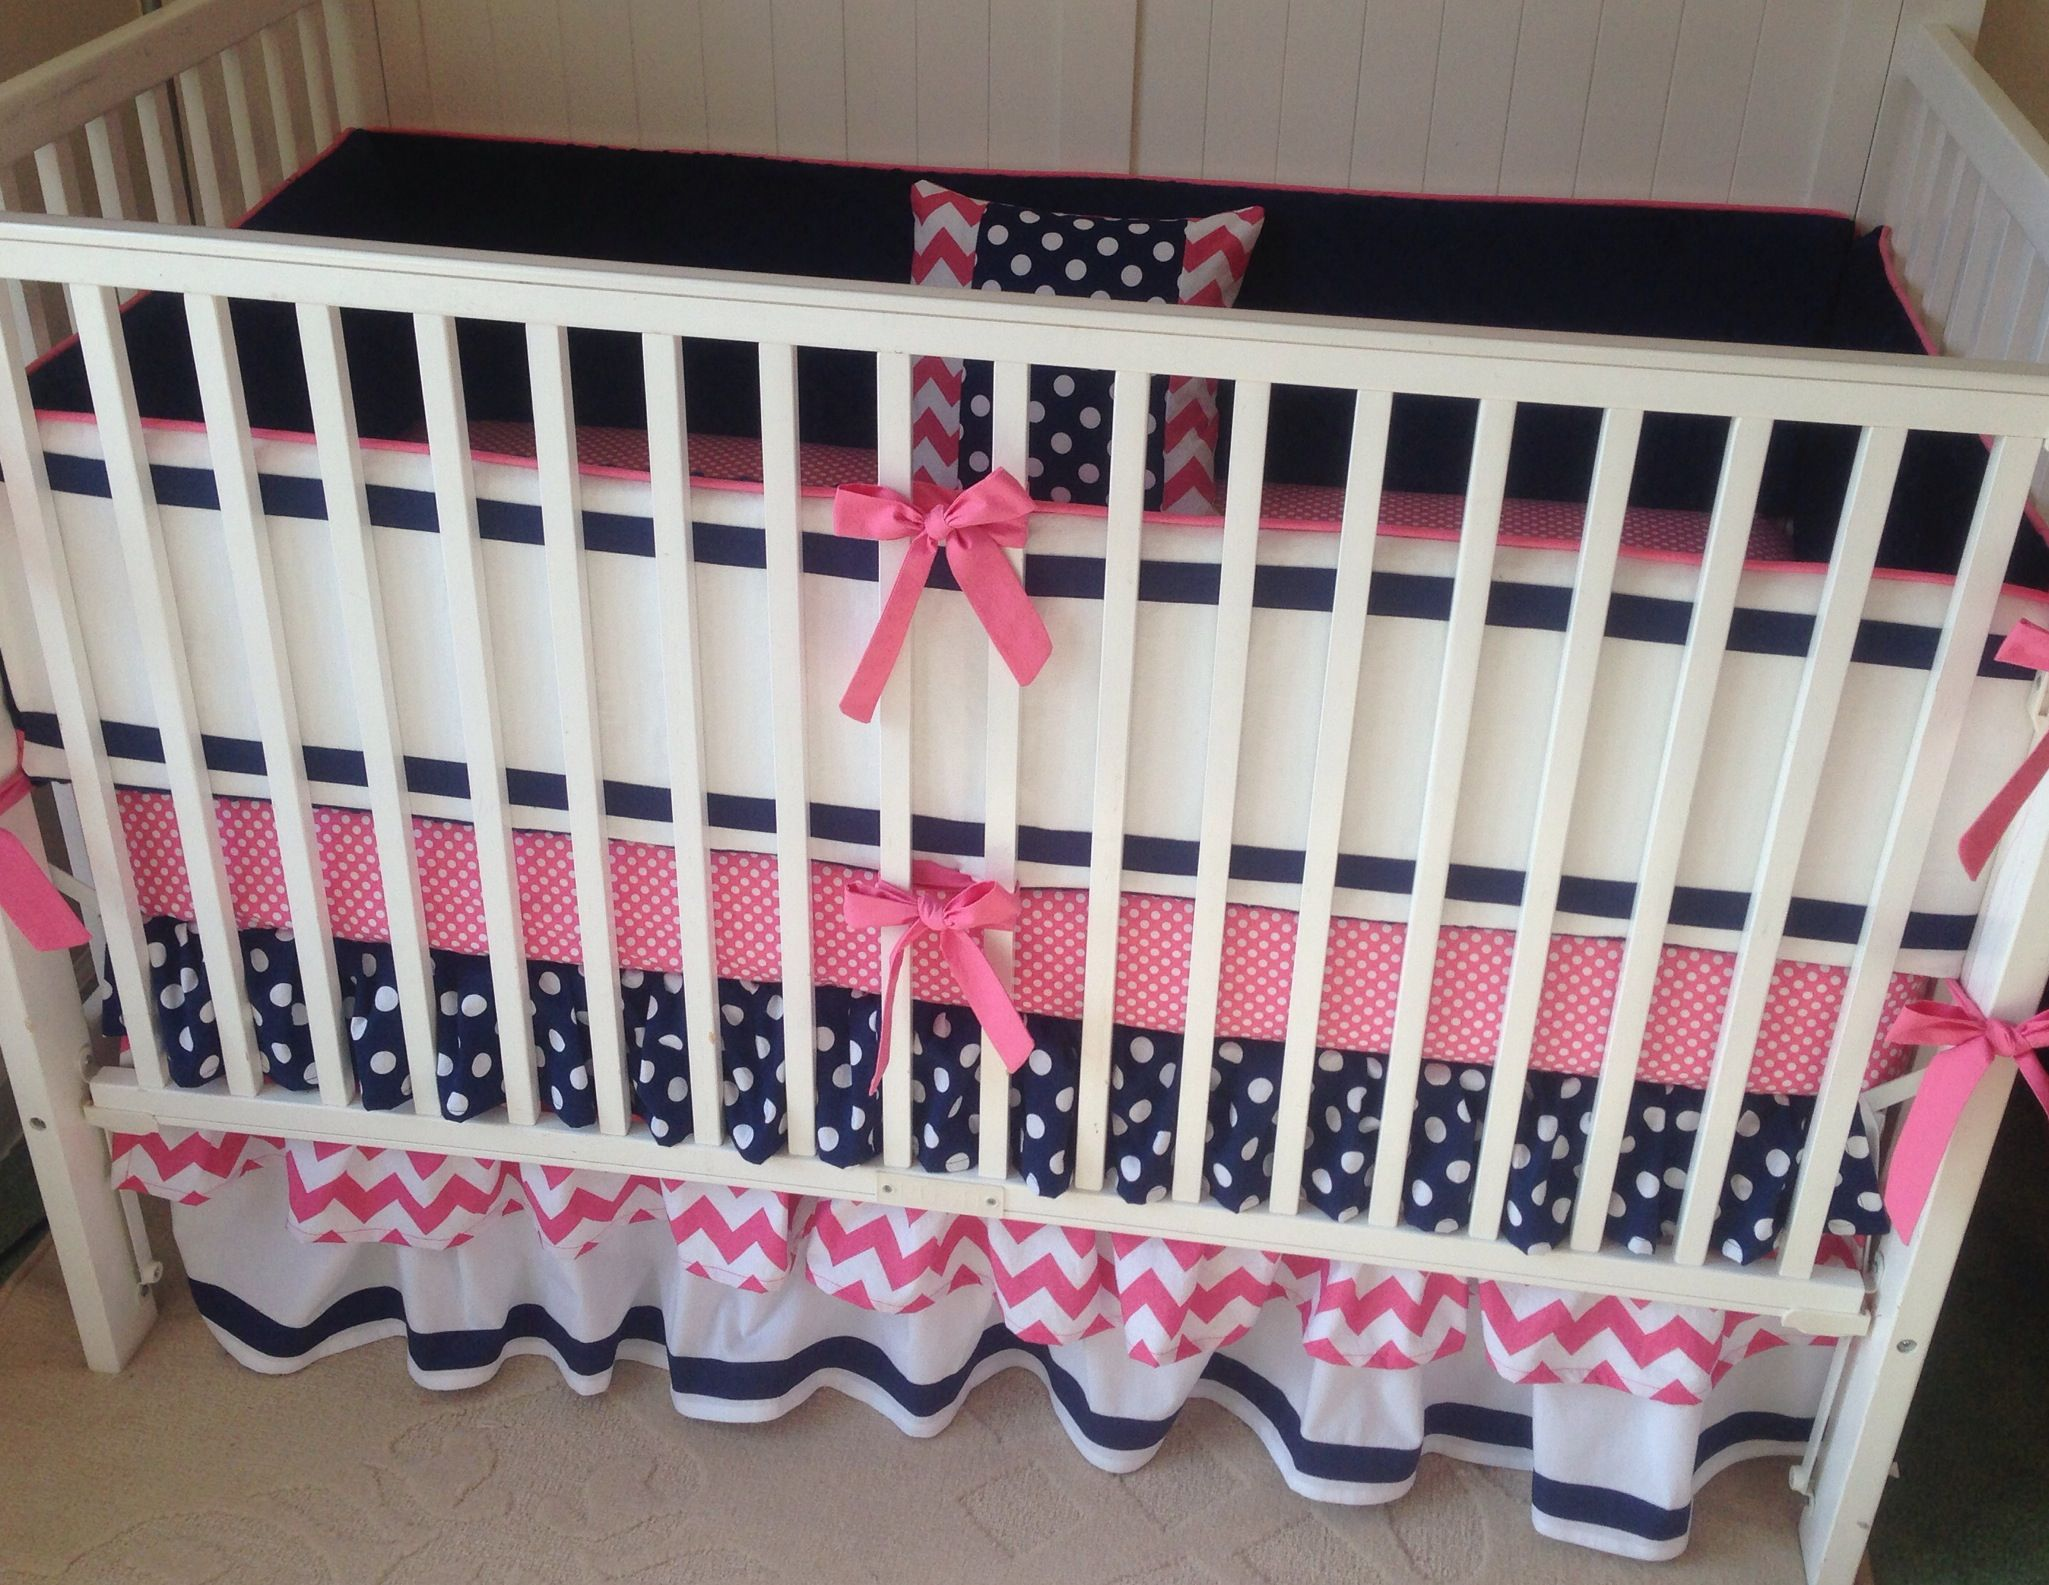 Preppy Pink And Navy Ruffled Crib Bedding So Sweet For A Nursery Www Erbeansboutique Etsy